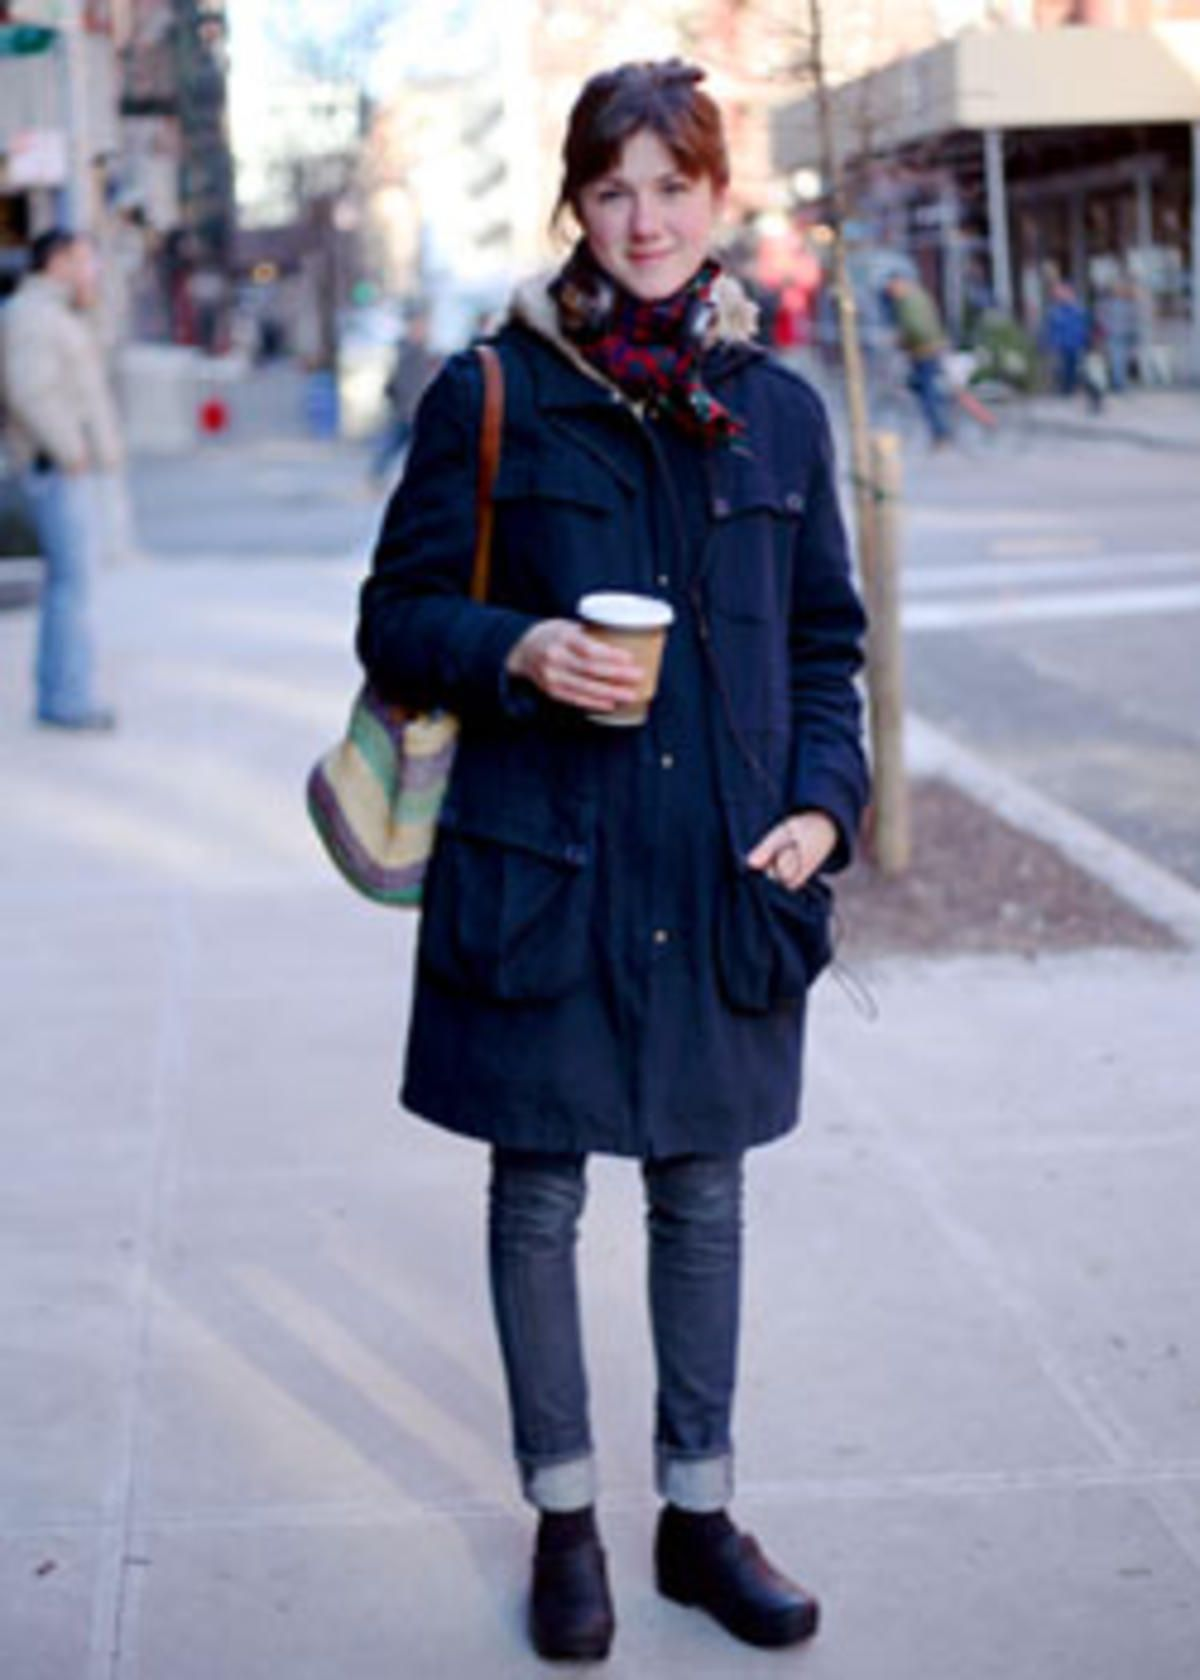 Good Winter #traveloutfit With Dansko Clogs. Street